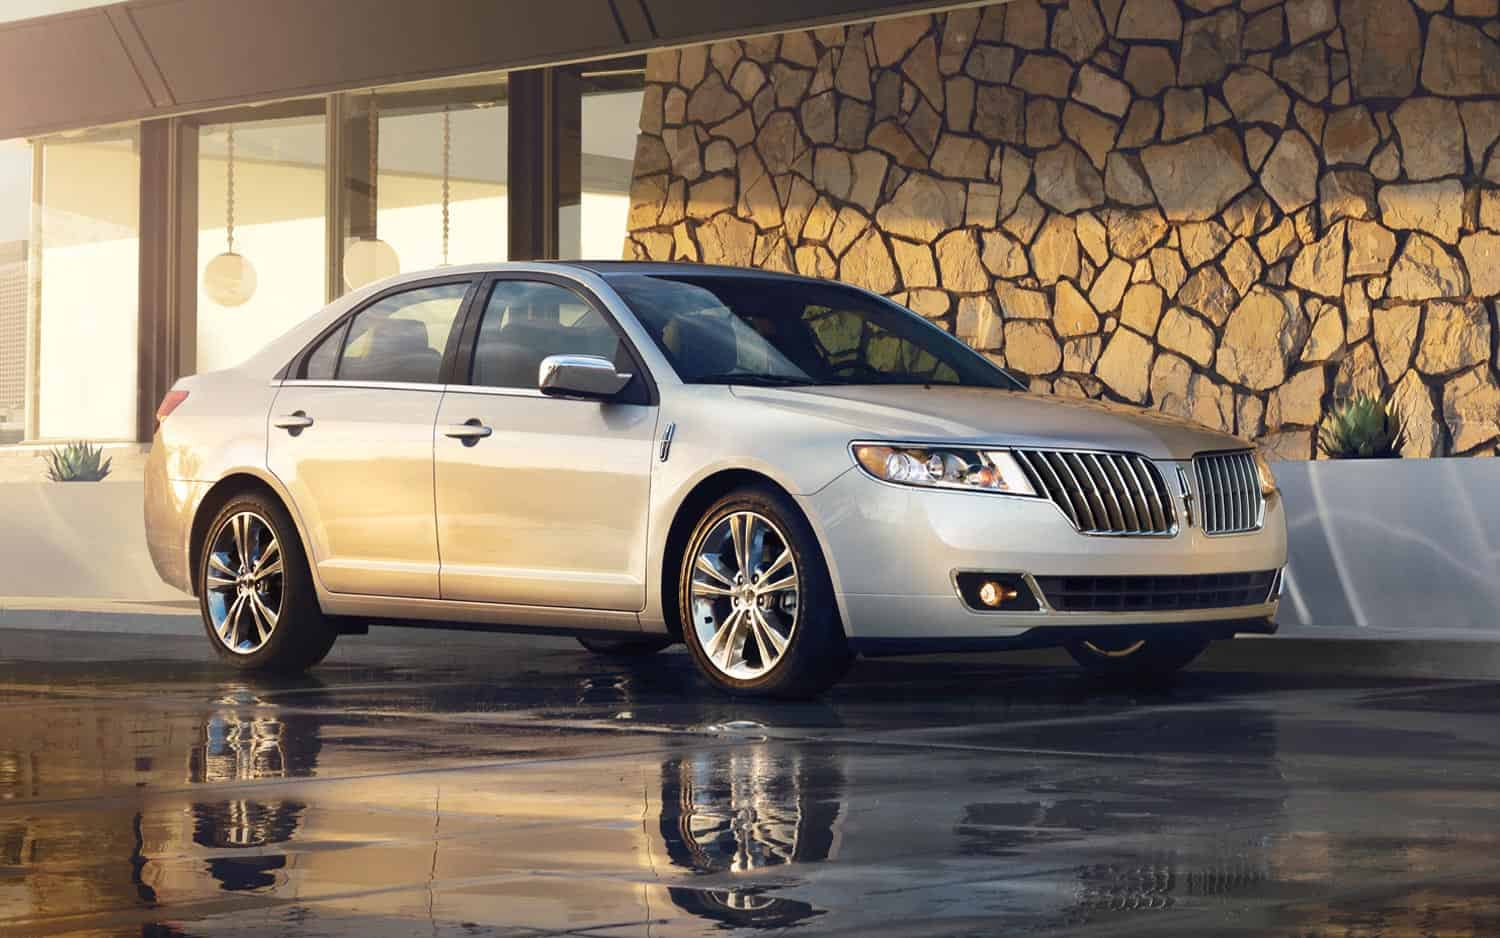 Our list of cheap luxury cars includes the 2012 Lincoln MKZ